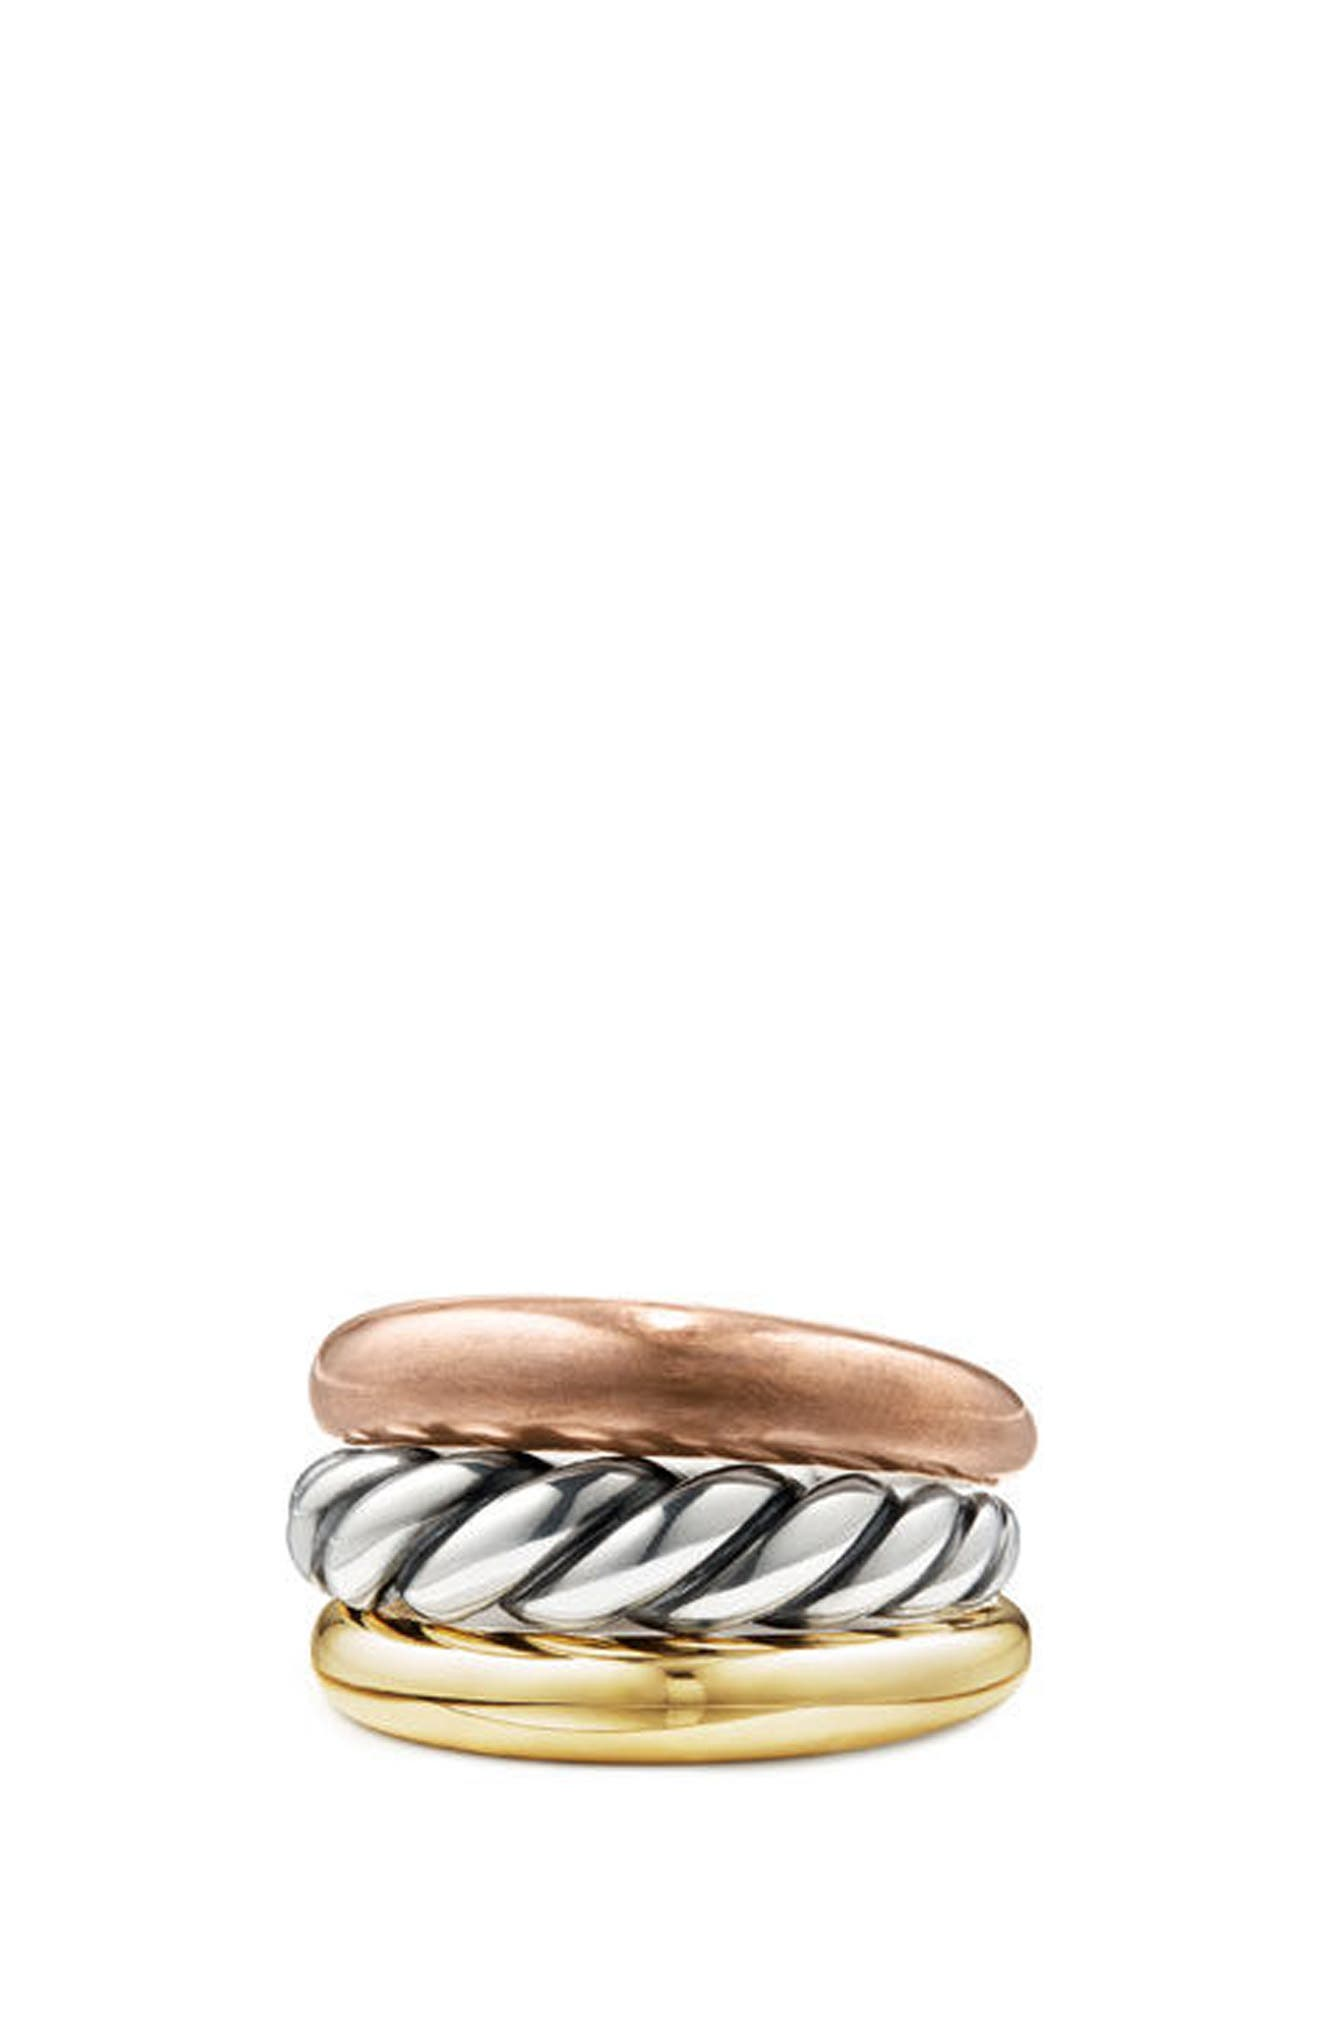 Pure Form Mixed Metal Three-Row Ring with Bronze, Silver & Brass,                         Main,                         color, Silver